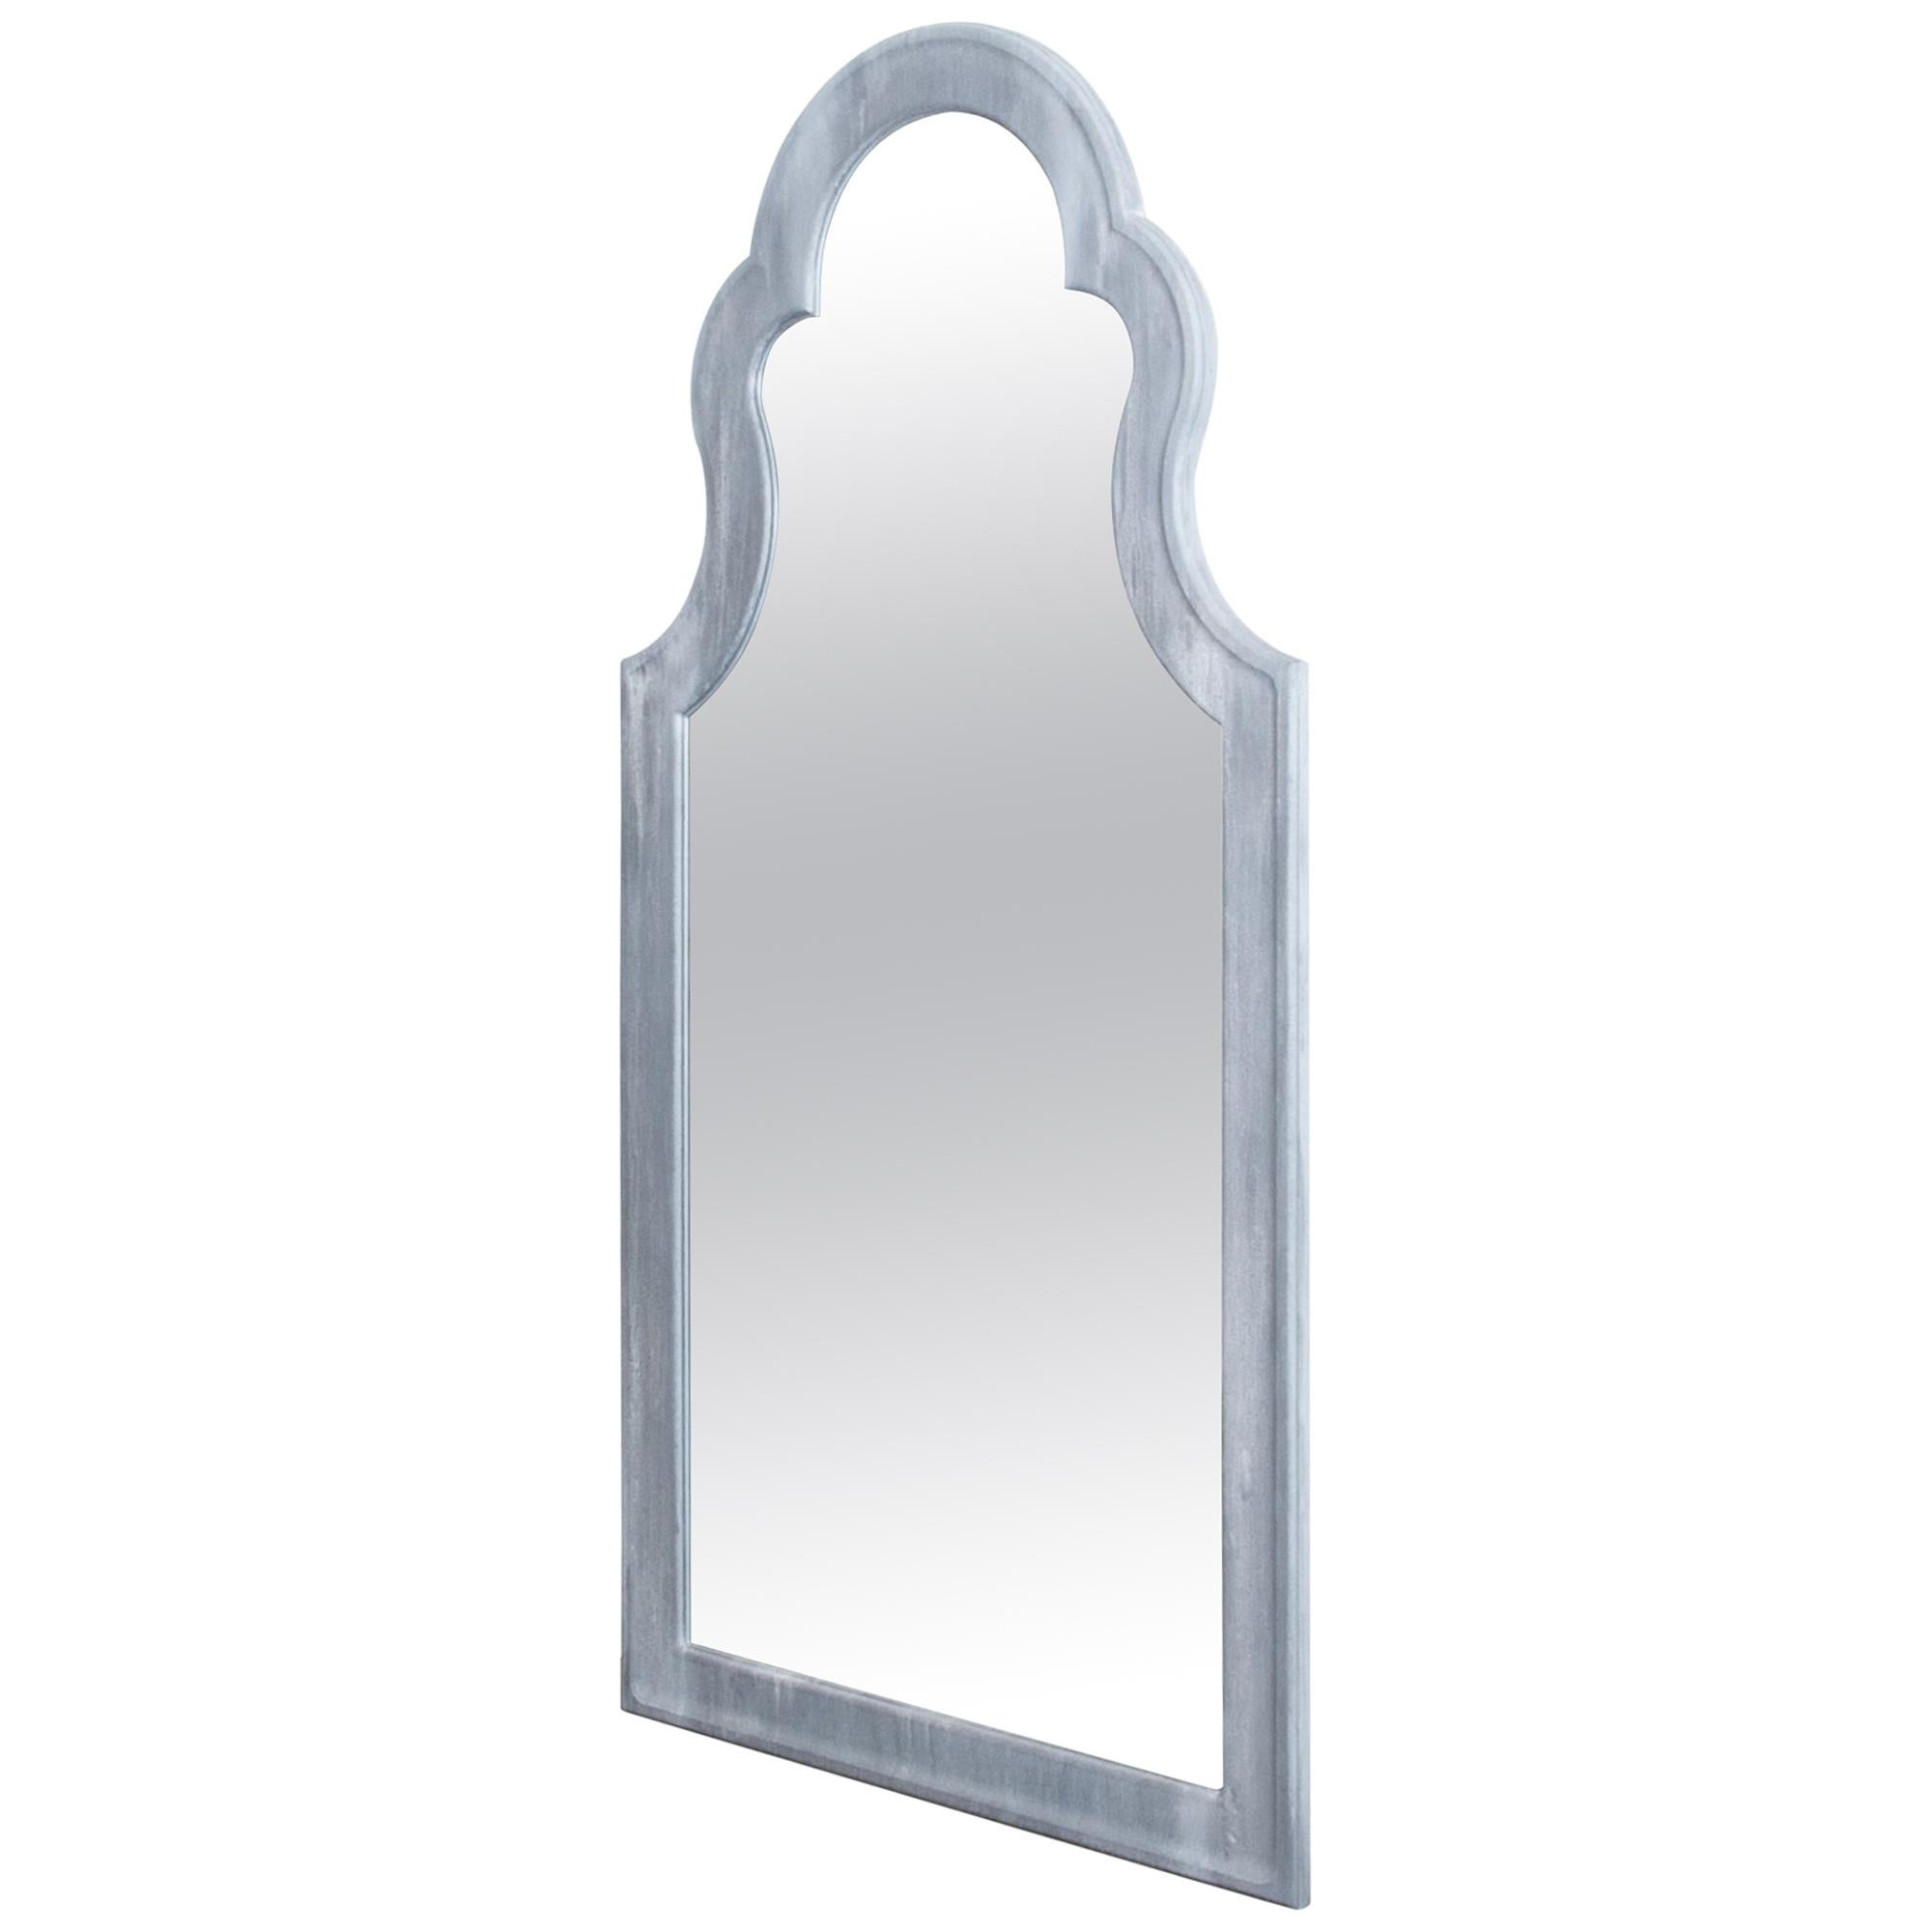 Painted Wooden Arched Tall Mirror Prototype For Sale At 1stdibs